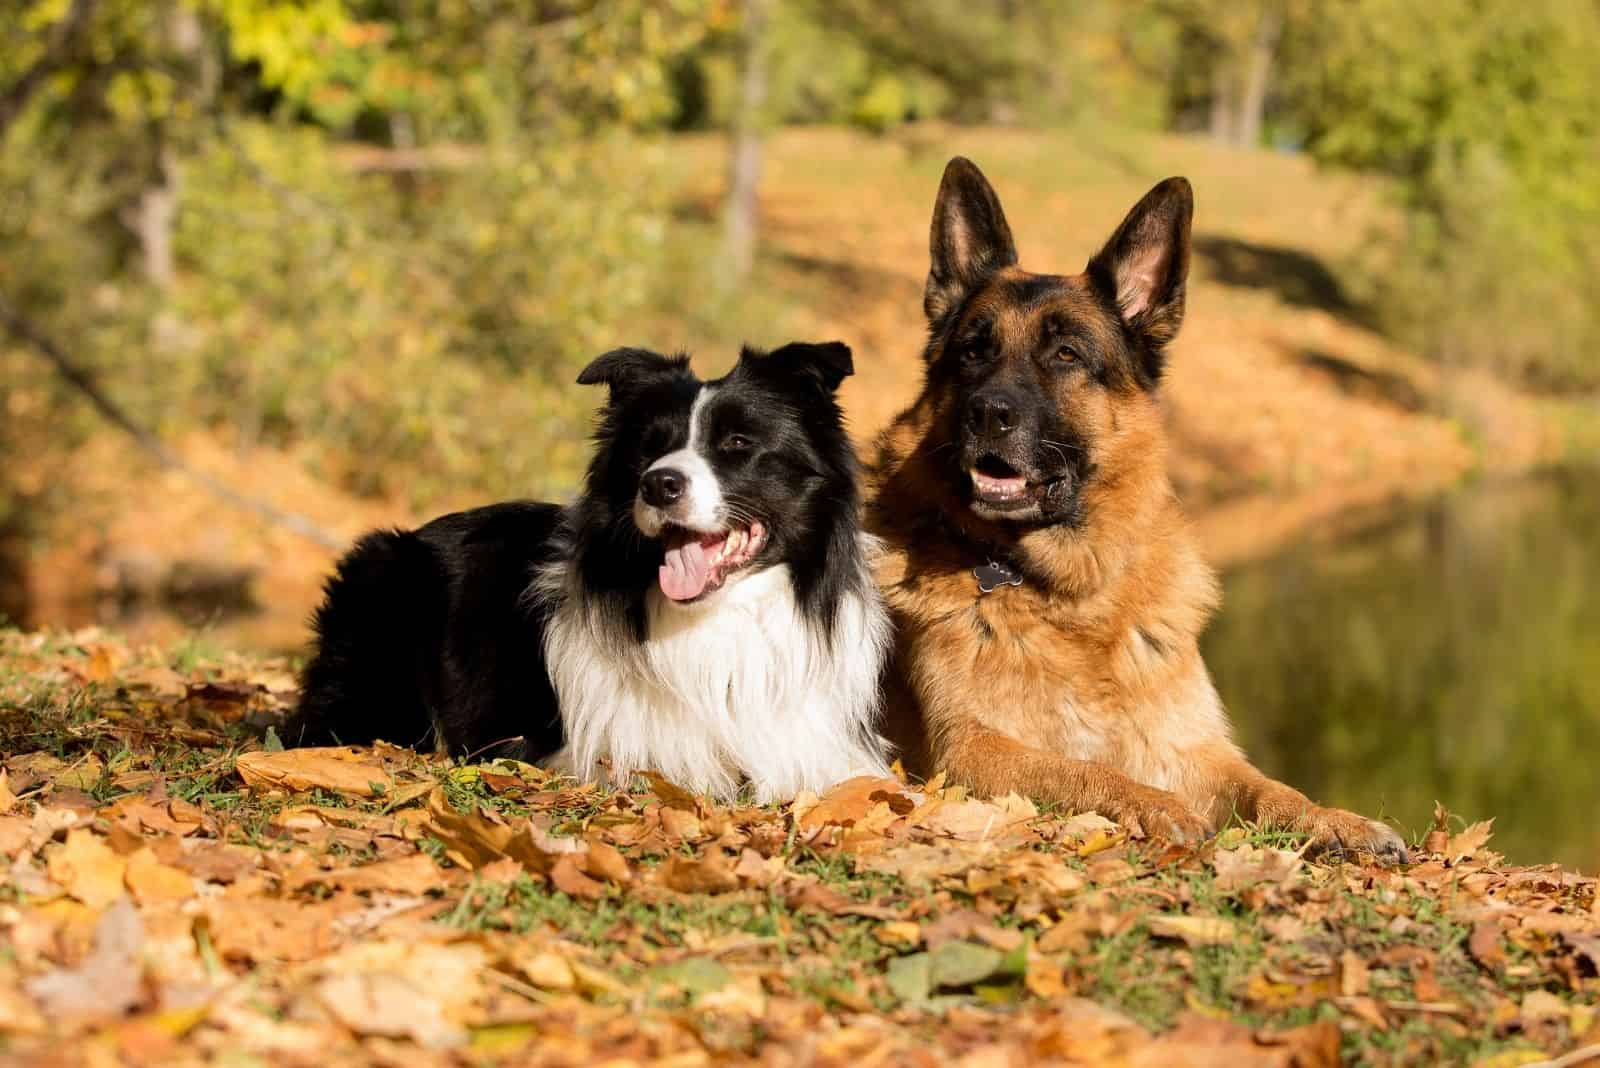 german shepherd and border collie lying down in an autumn forest